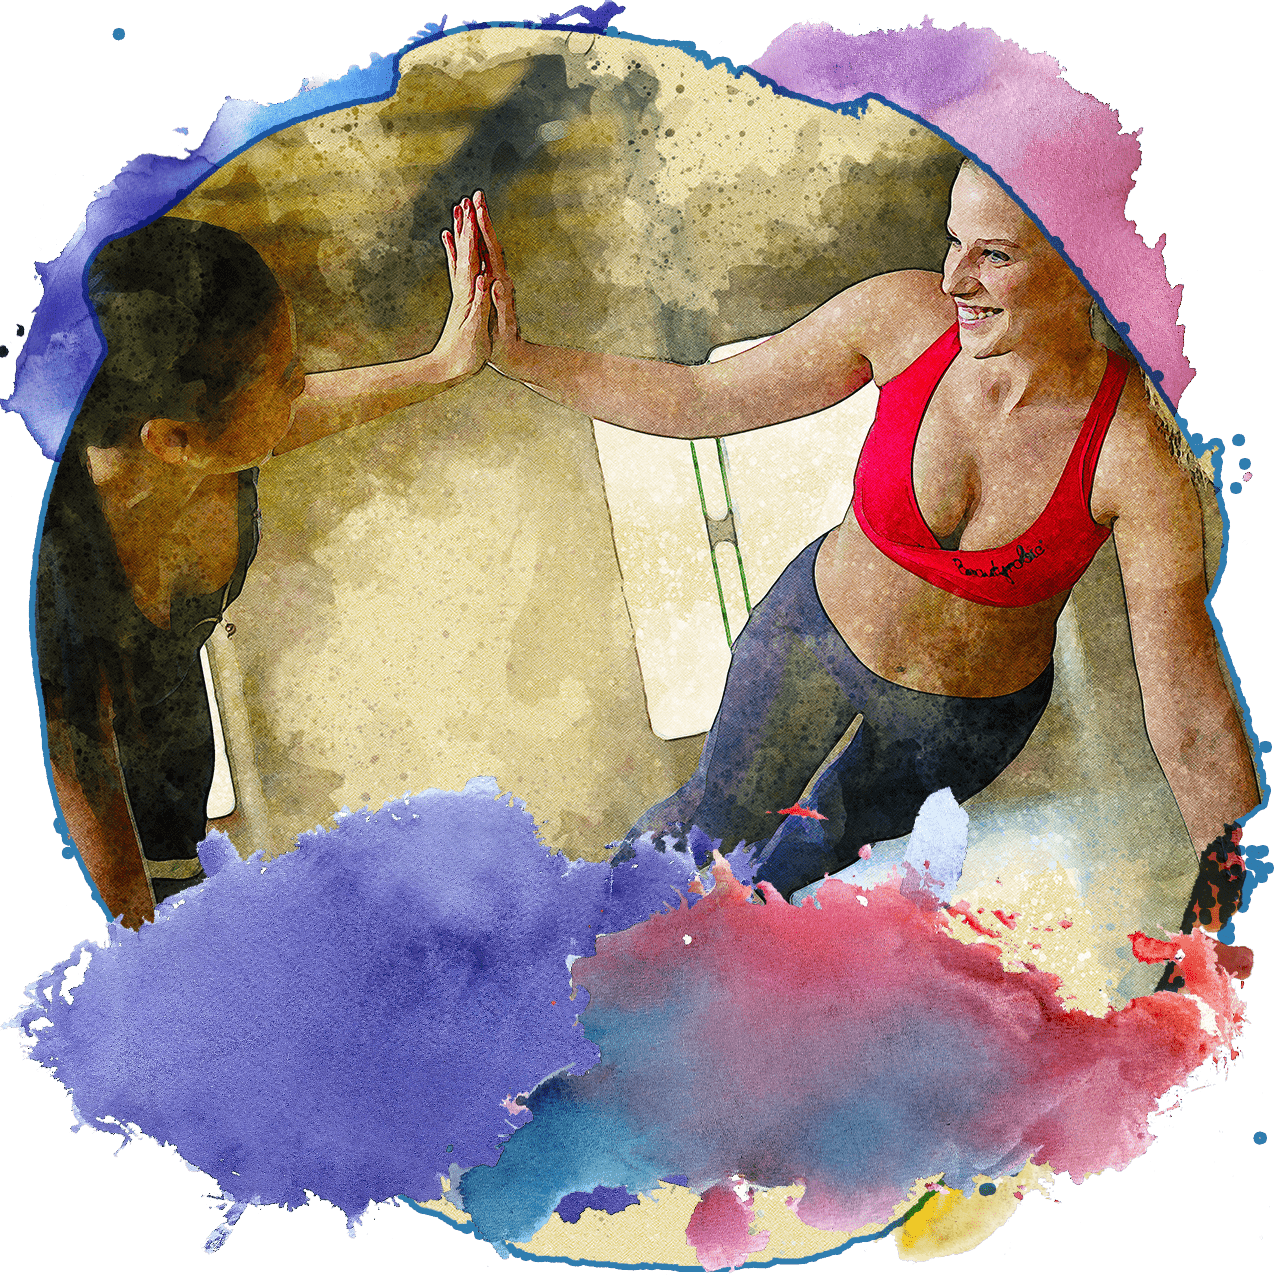 5th-Place__Water-colour-splash-images__Sports-performance-enhancement-05-protect-your-sports-asset-investment